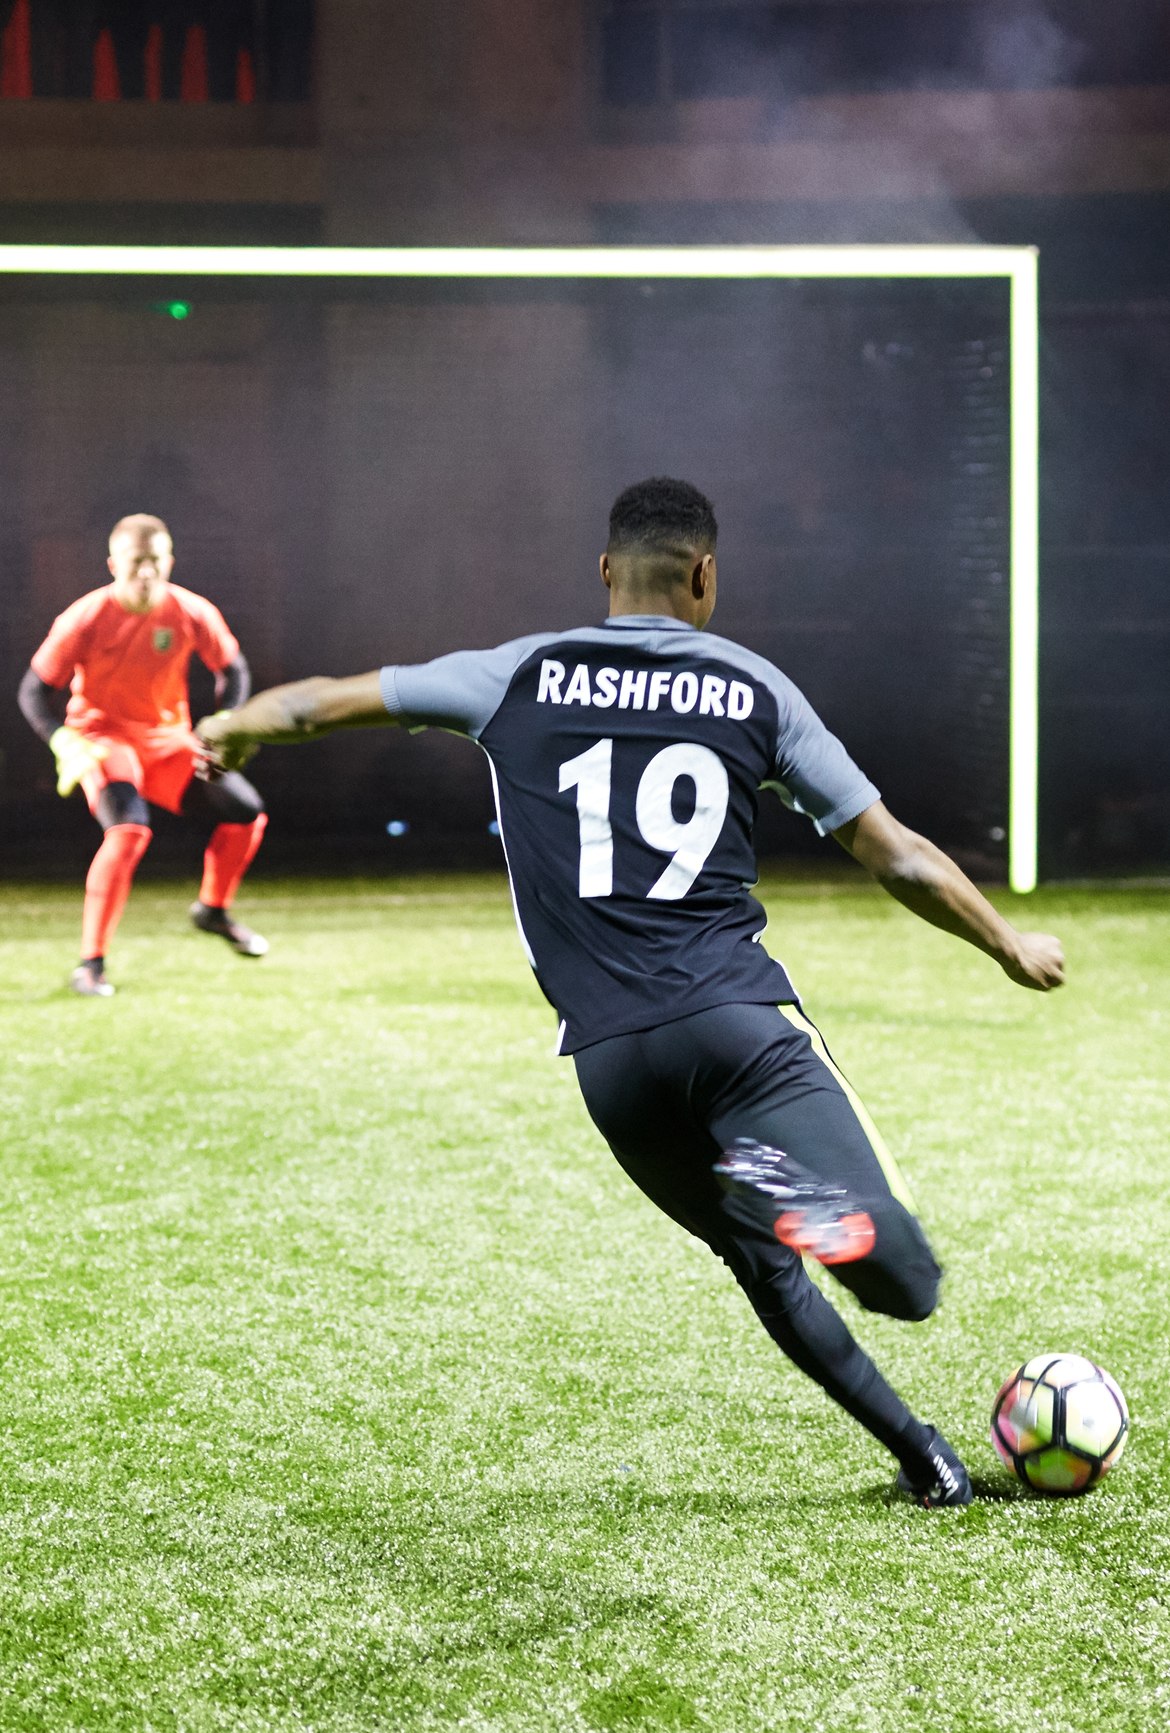 nike_strikenight_rashford4.jpg